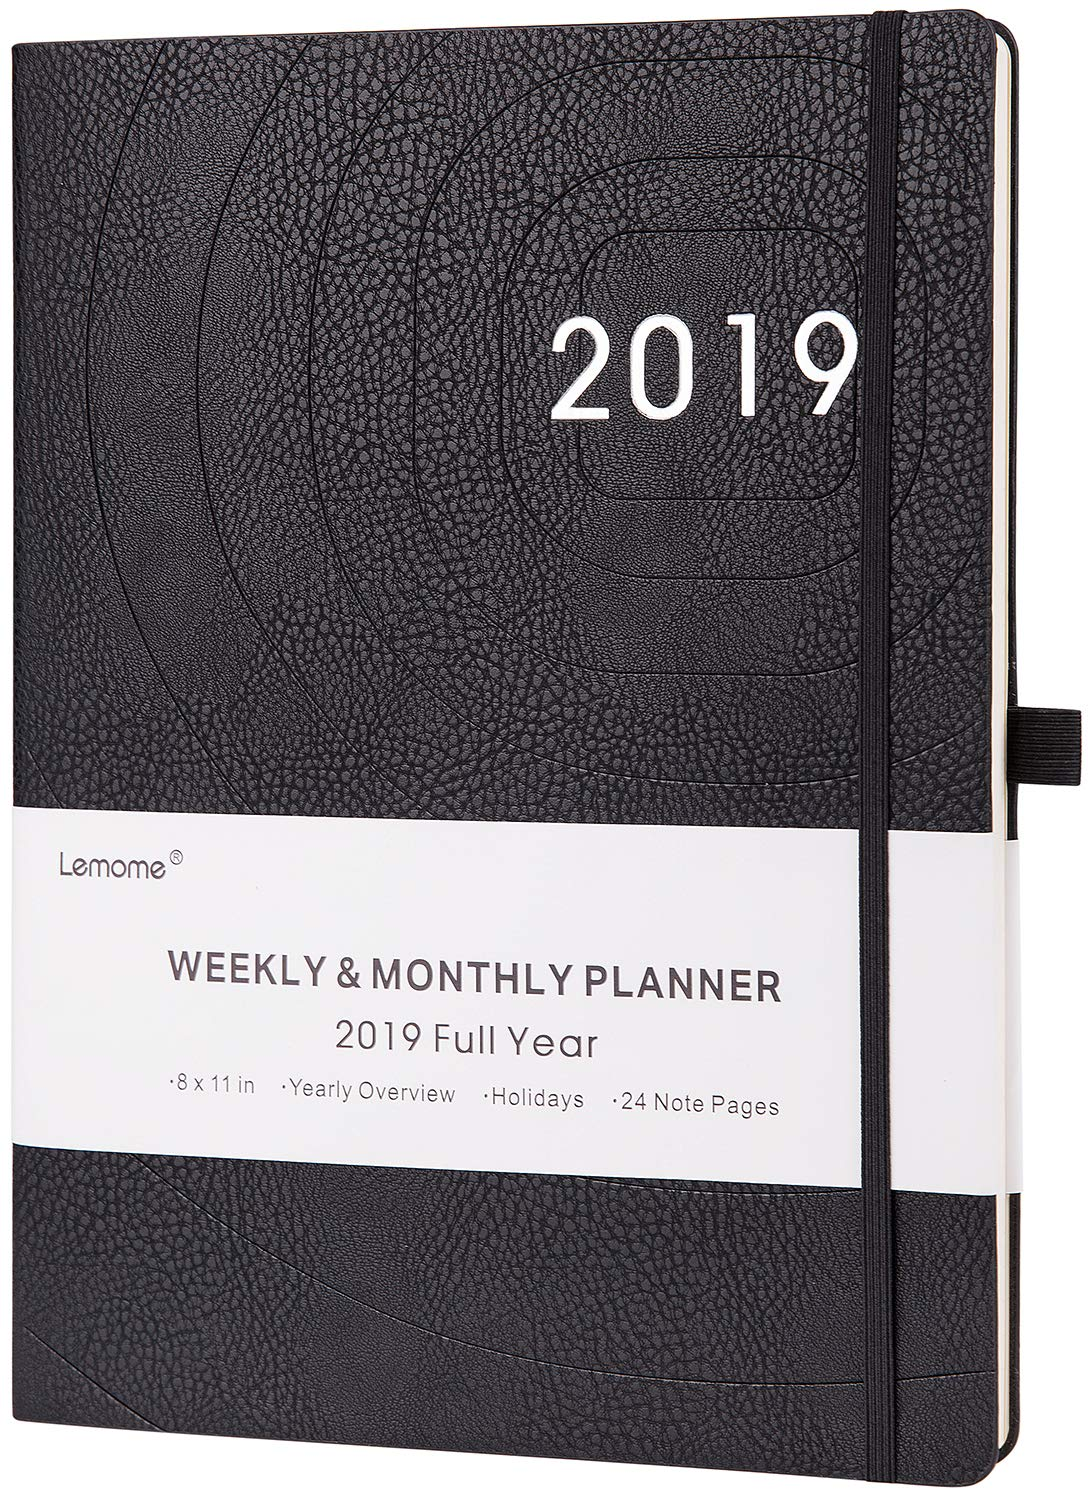 Planner 2019 – Academic Weekly, Monthly and Year Planner with Pen Loop, to Achieve Your Goals & Improve Productivity, Thick Paper, Inner Pocket, 8.5'' x 11'', Black